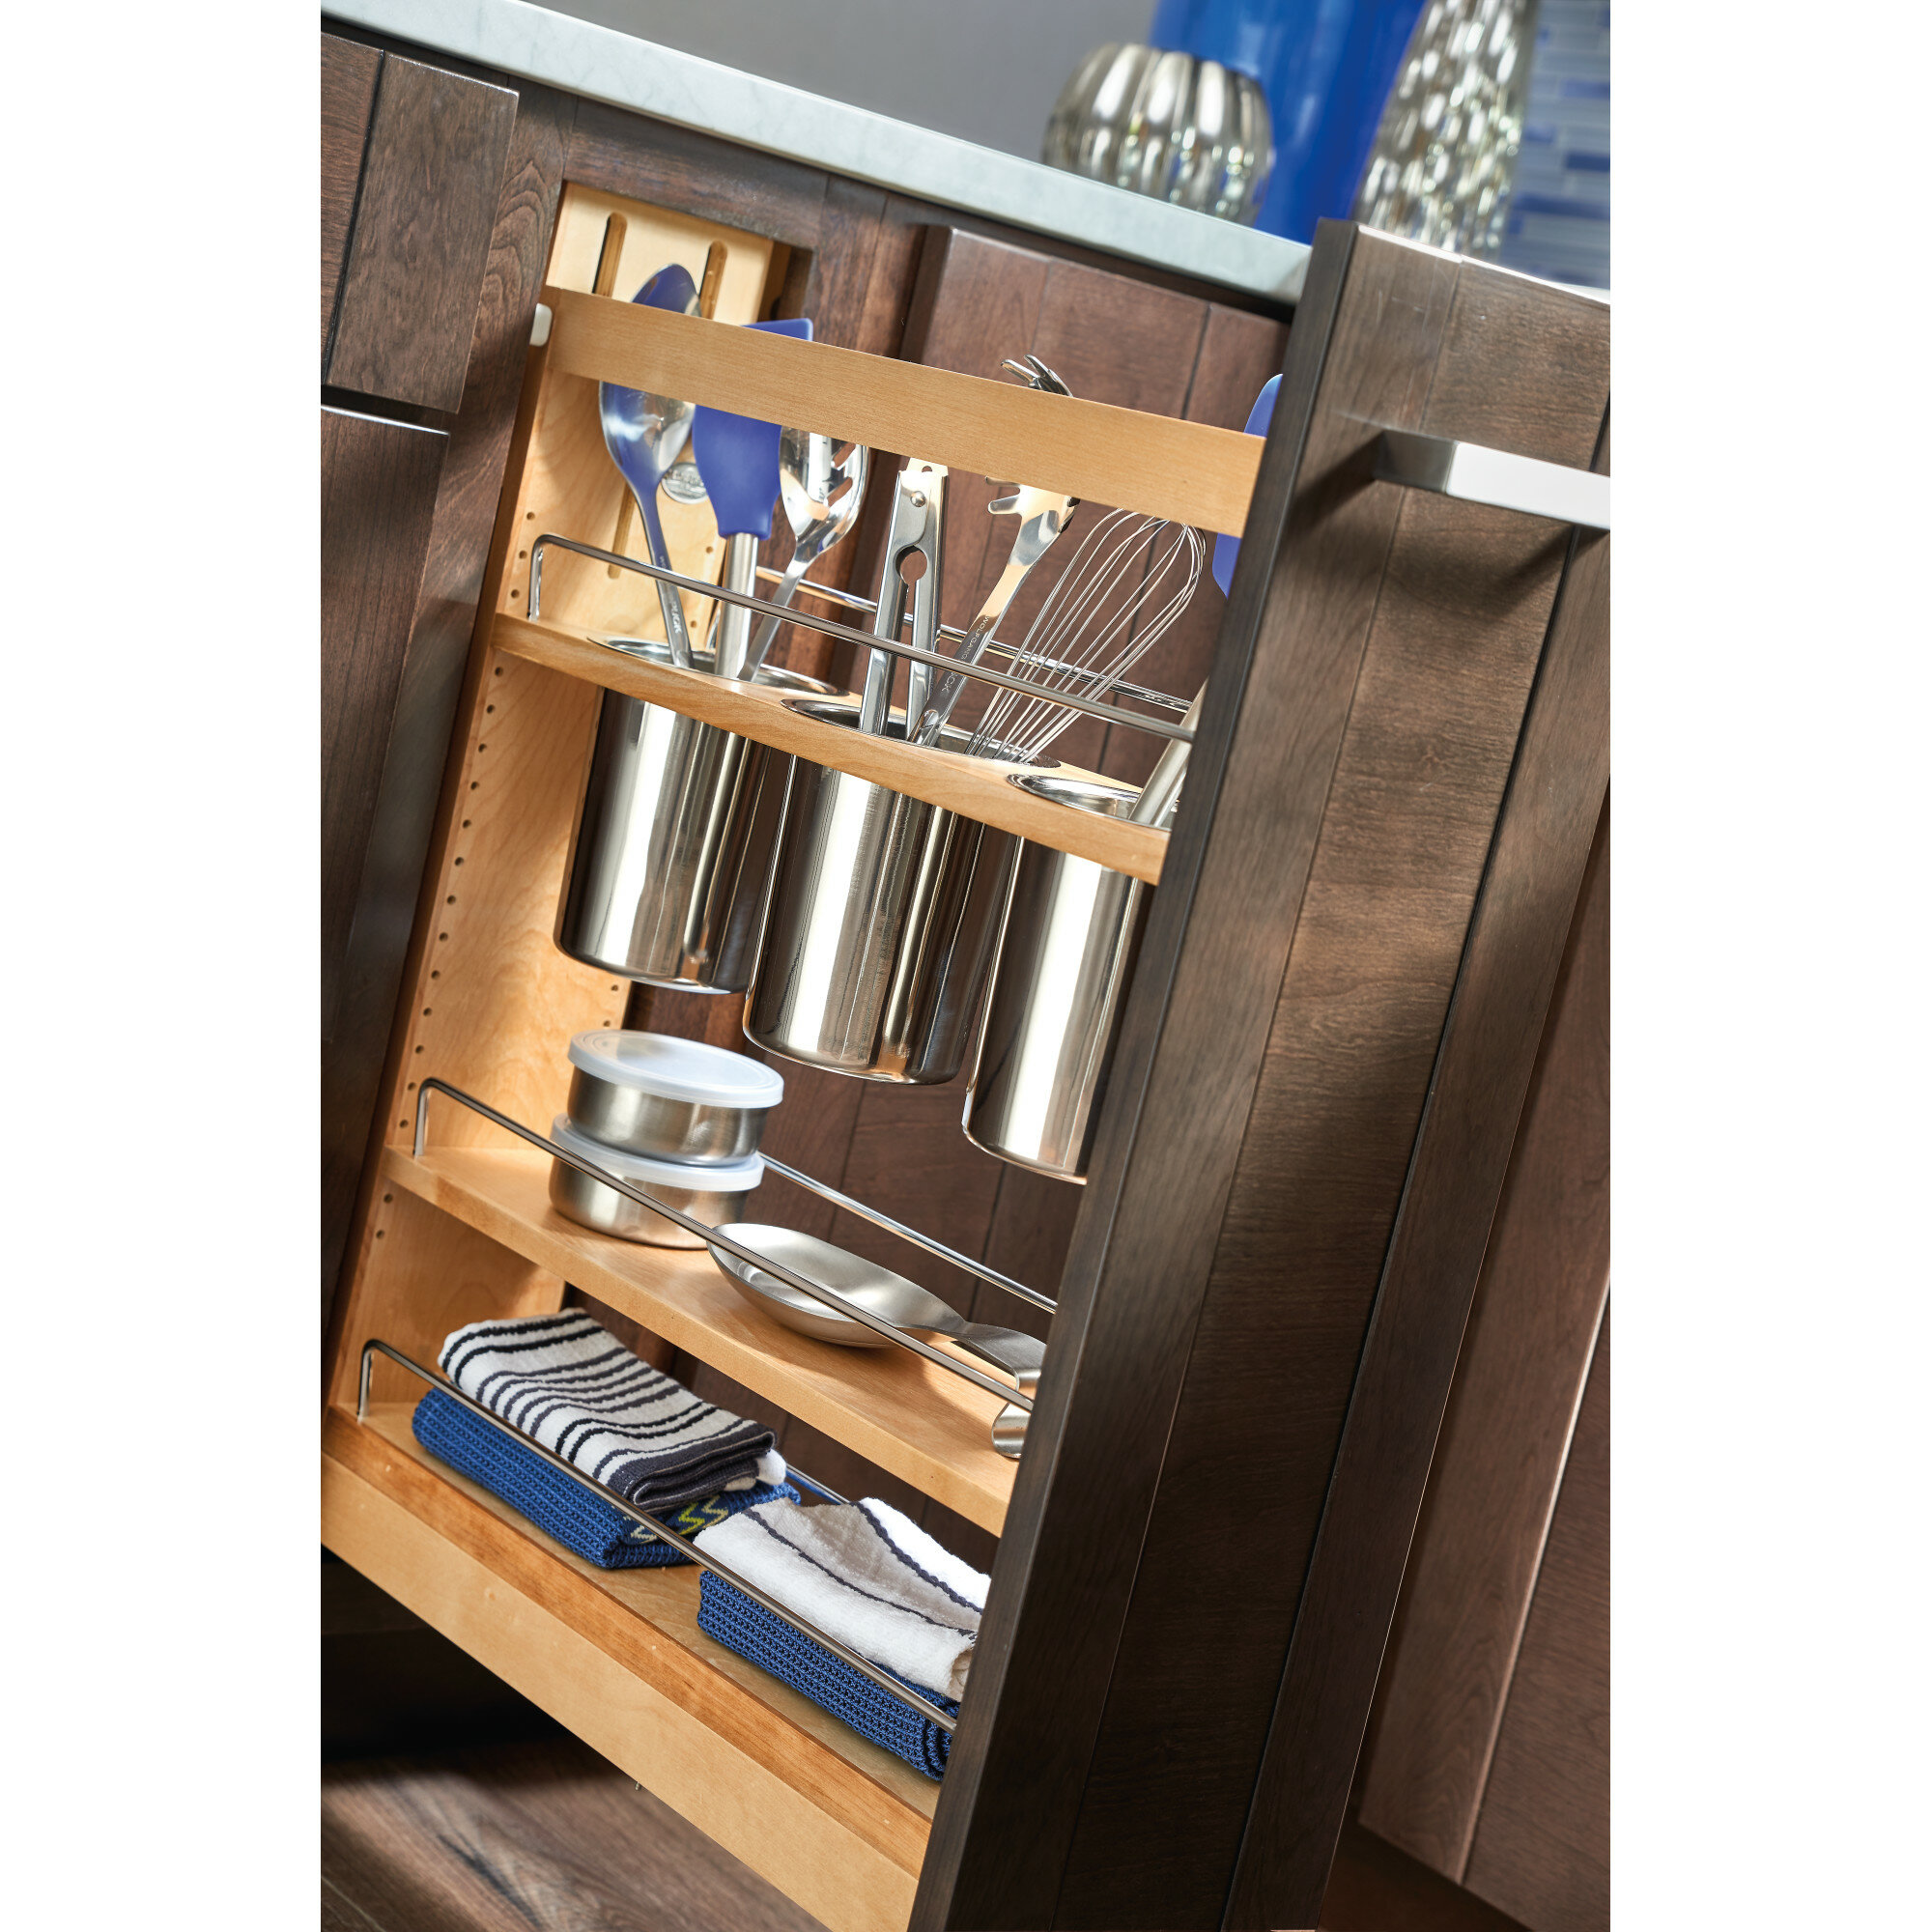 Peachy 5 Cabinet Utensil Organizer Pull Out Pantry Home Interior And Landscaping Synyenasavecom